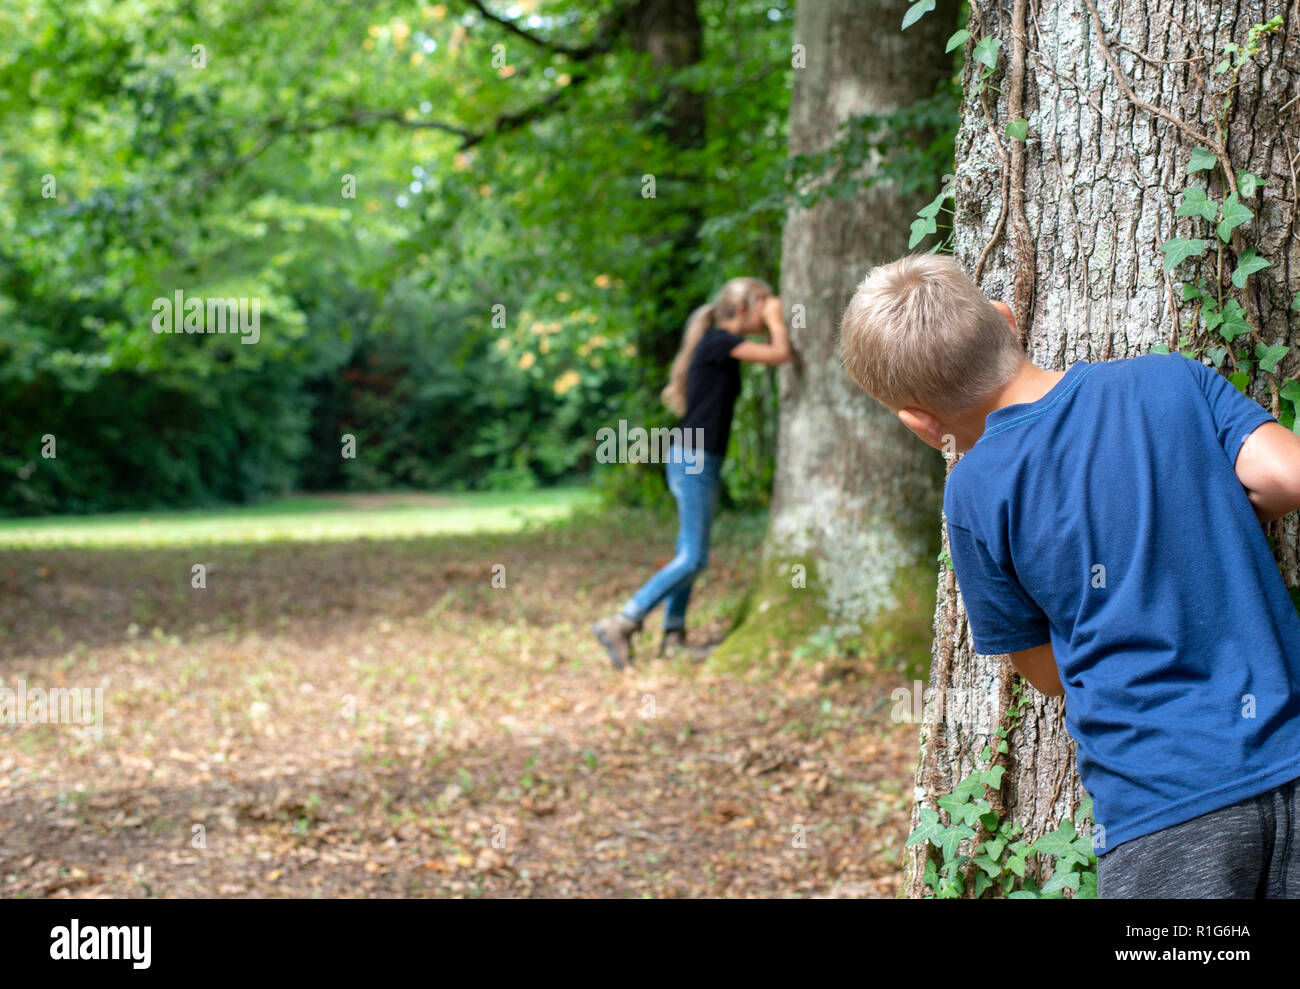 Young kids playing hide and seek in forest - Stock Image